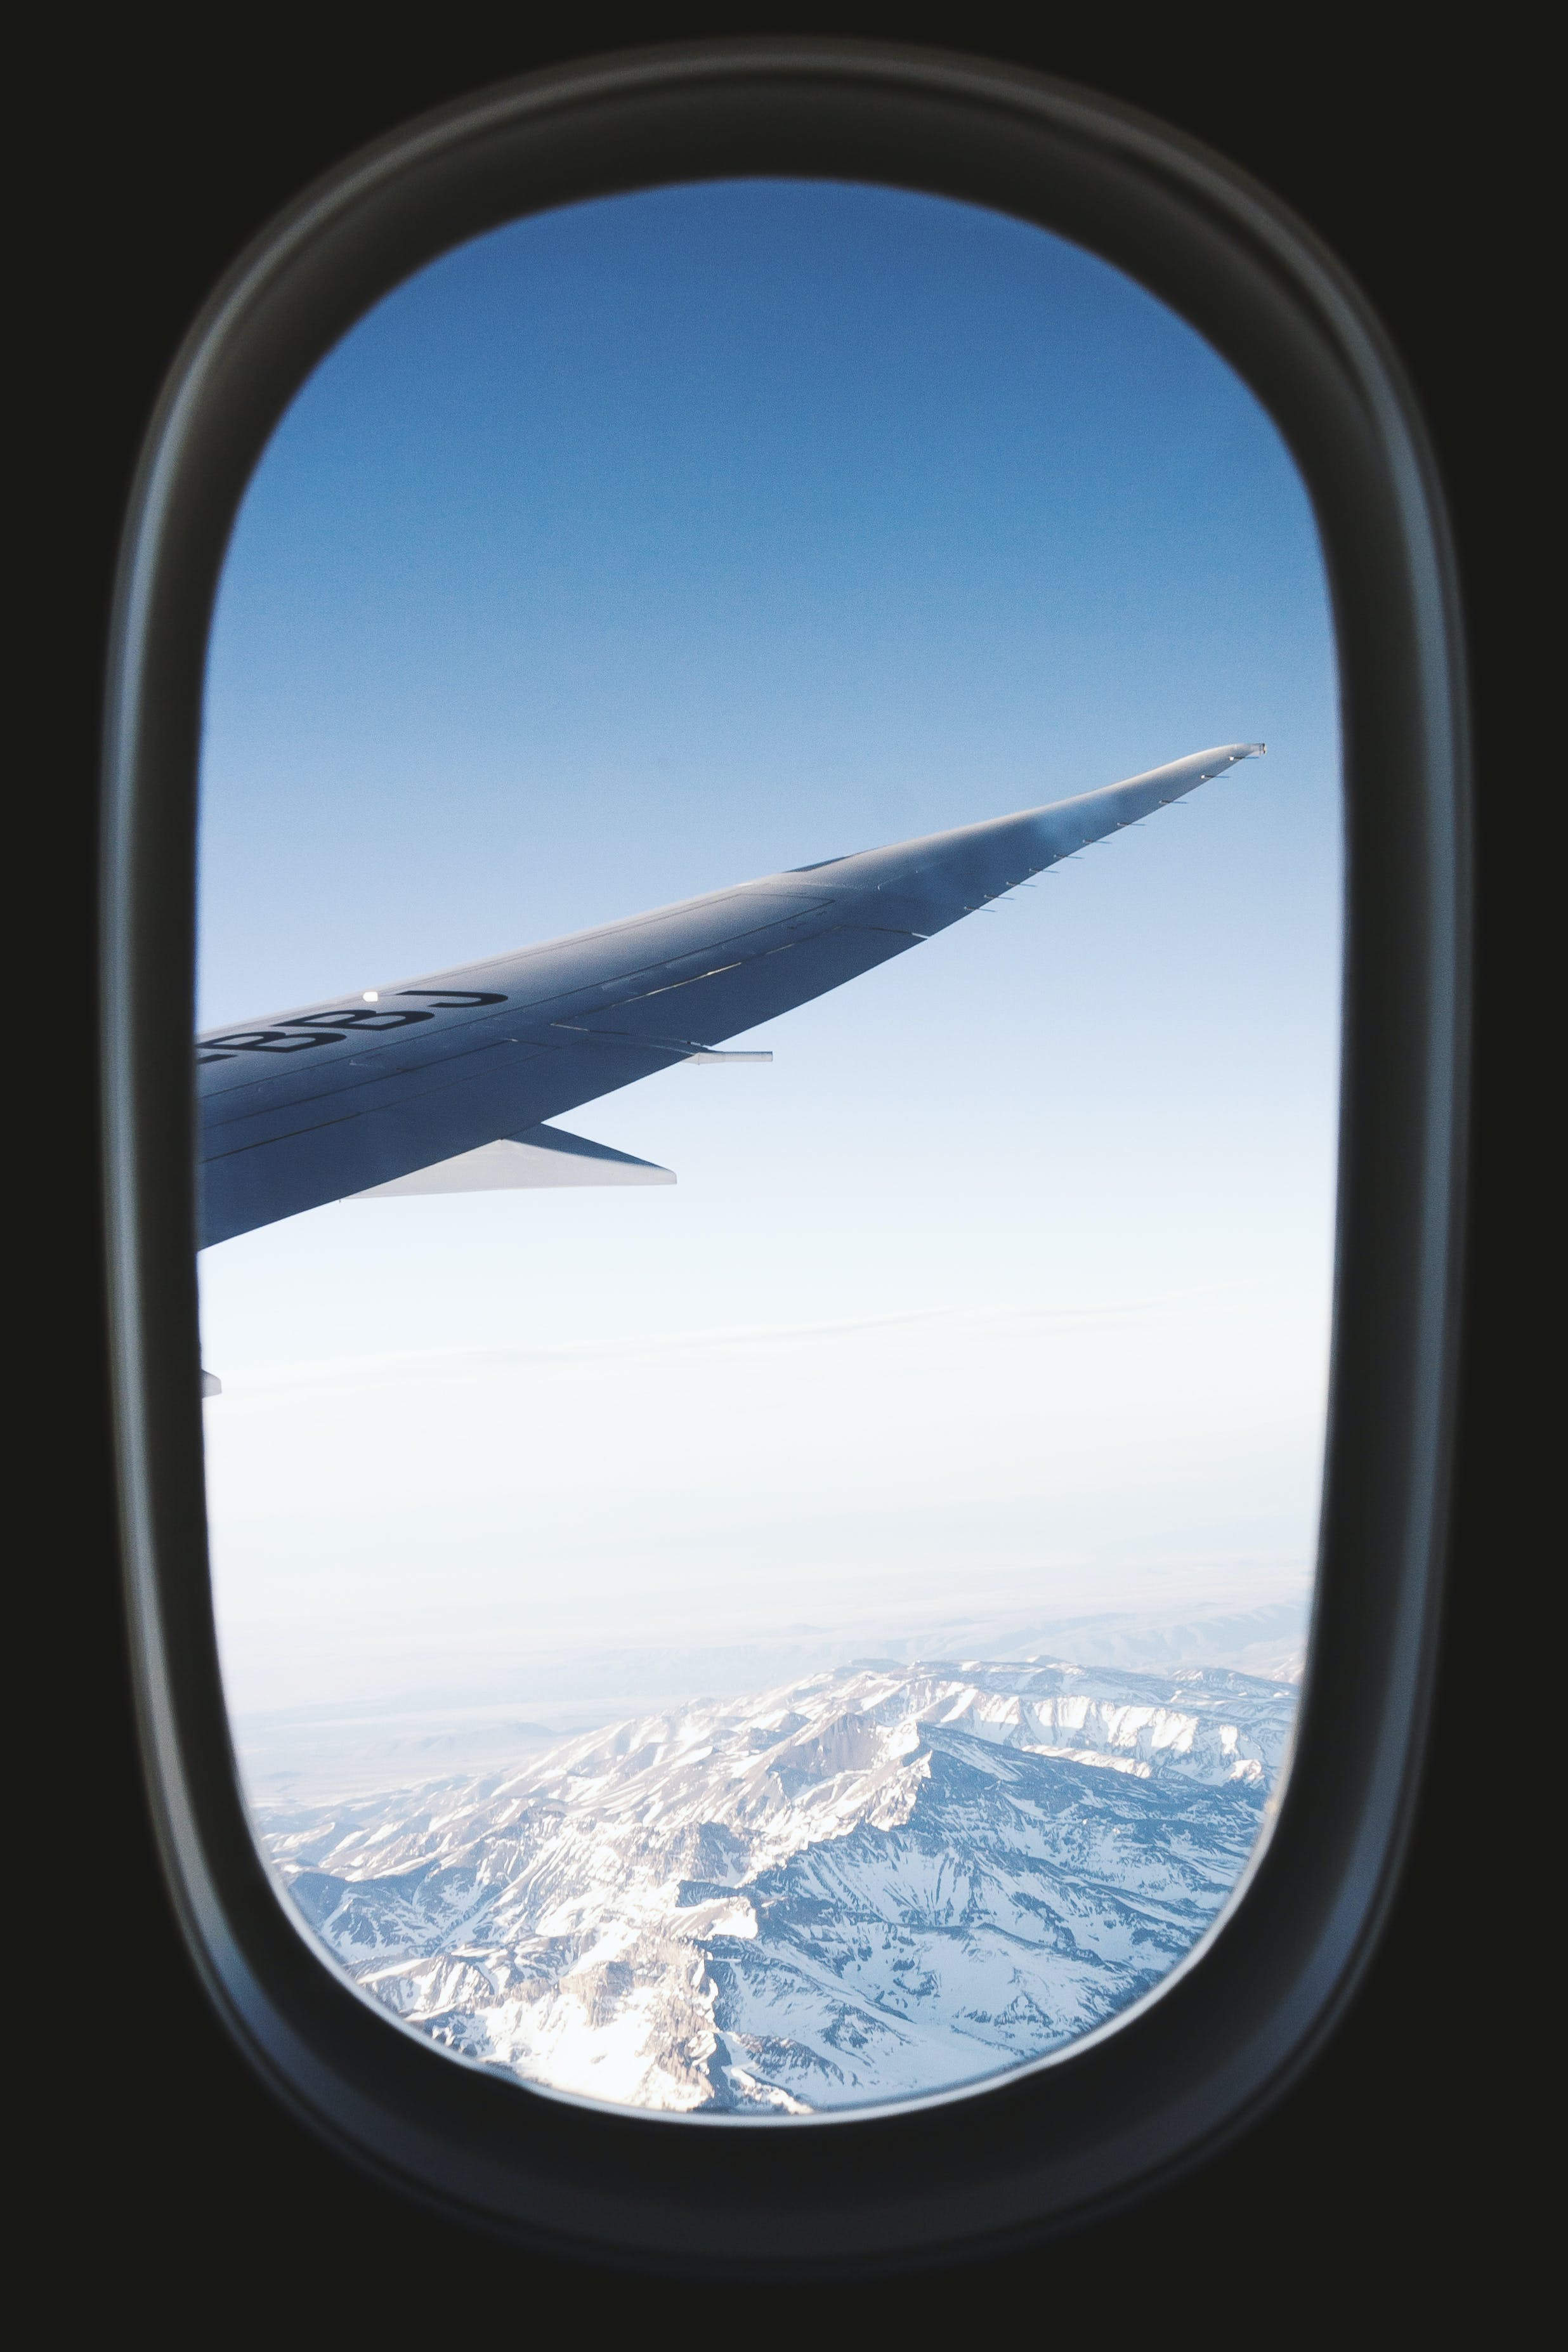 Gray Planes Right Wing With View of Snow-covered Mountains View from Window